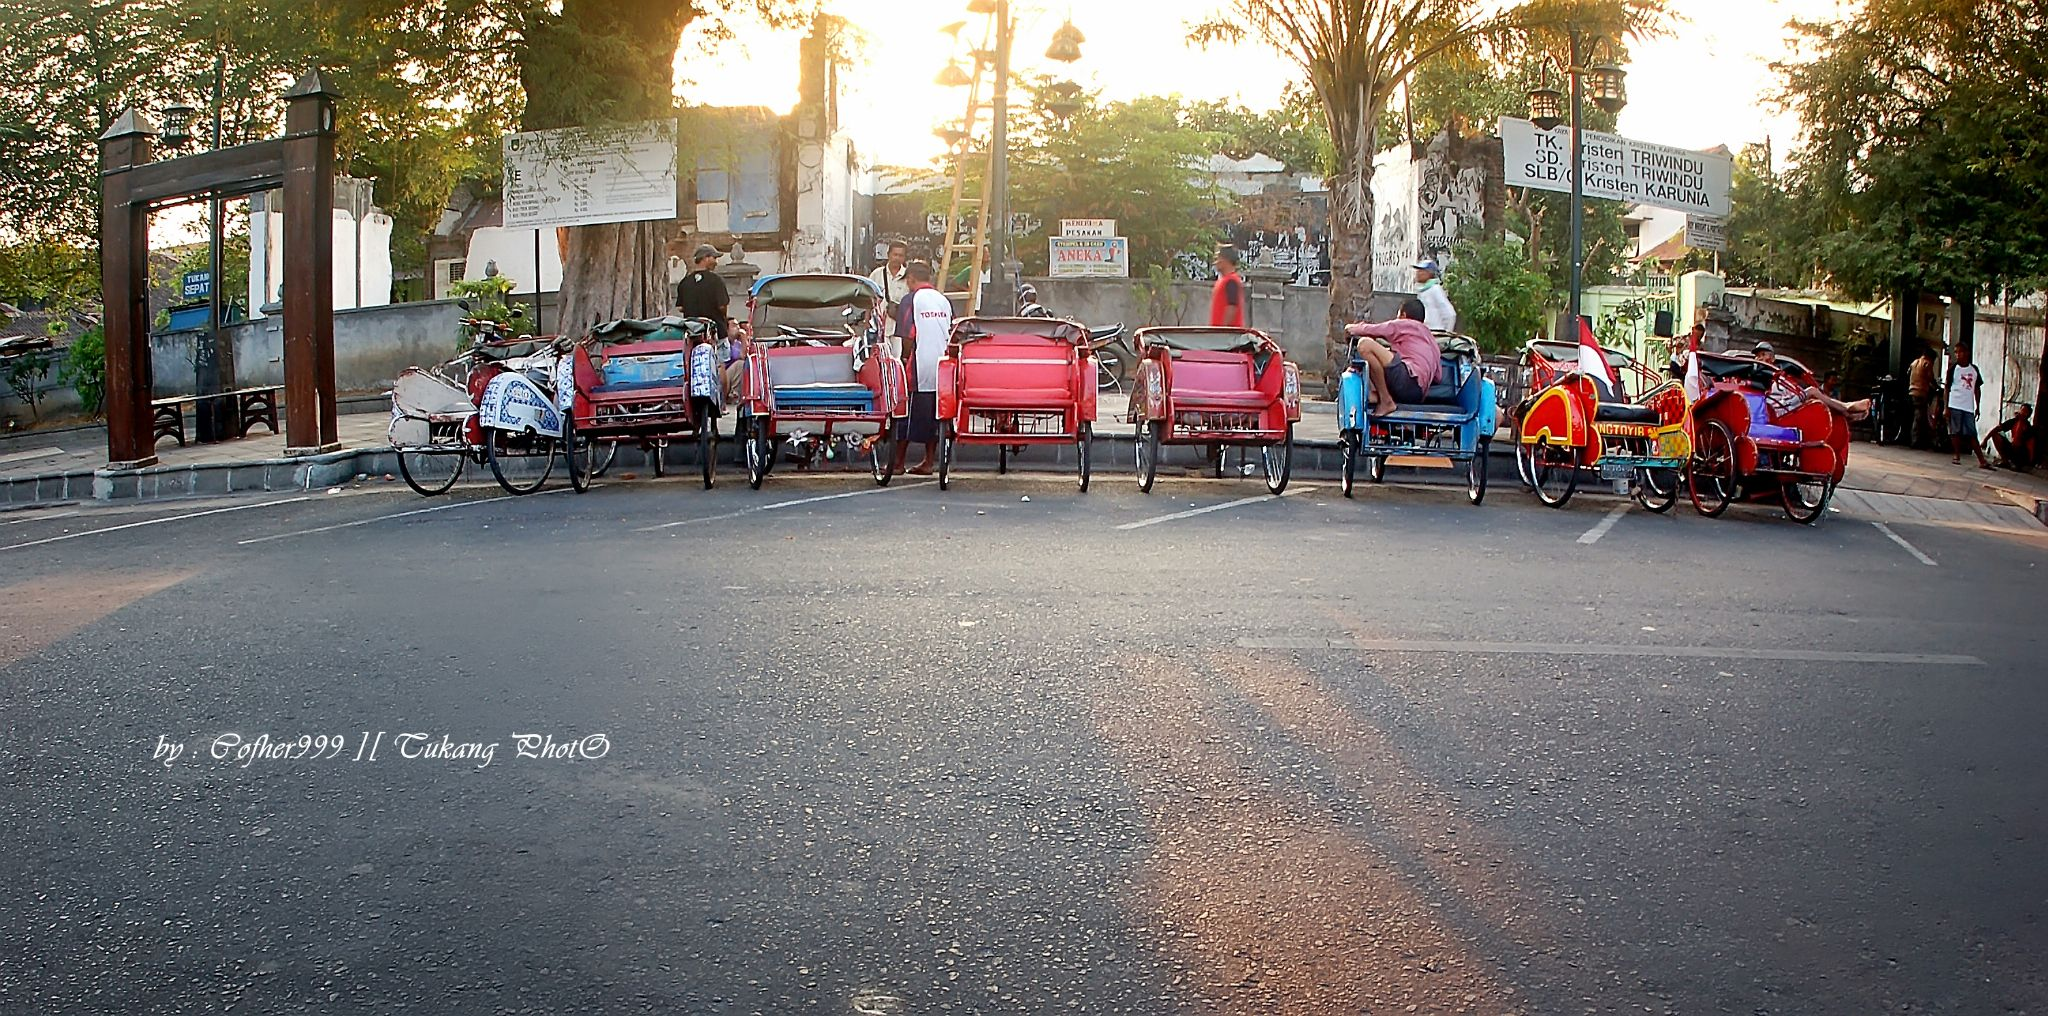 becak by buagas.andy